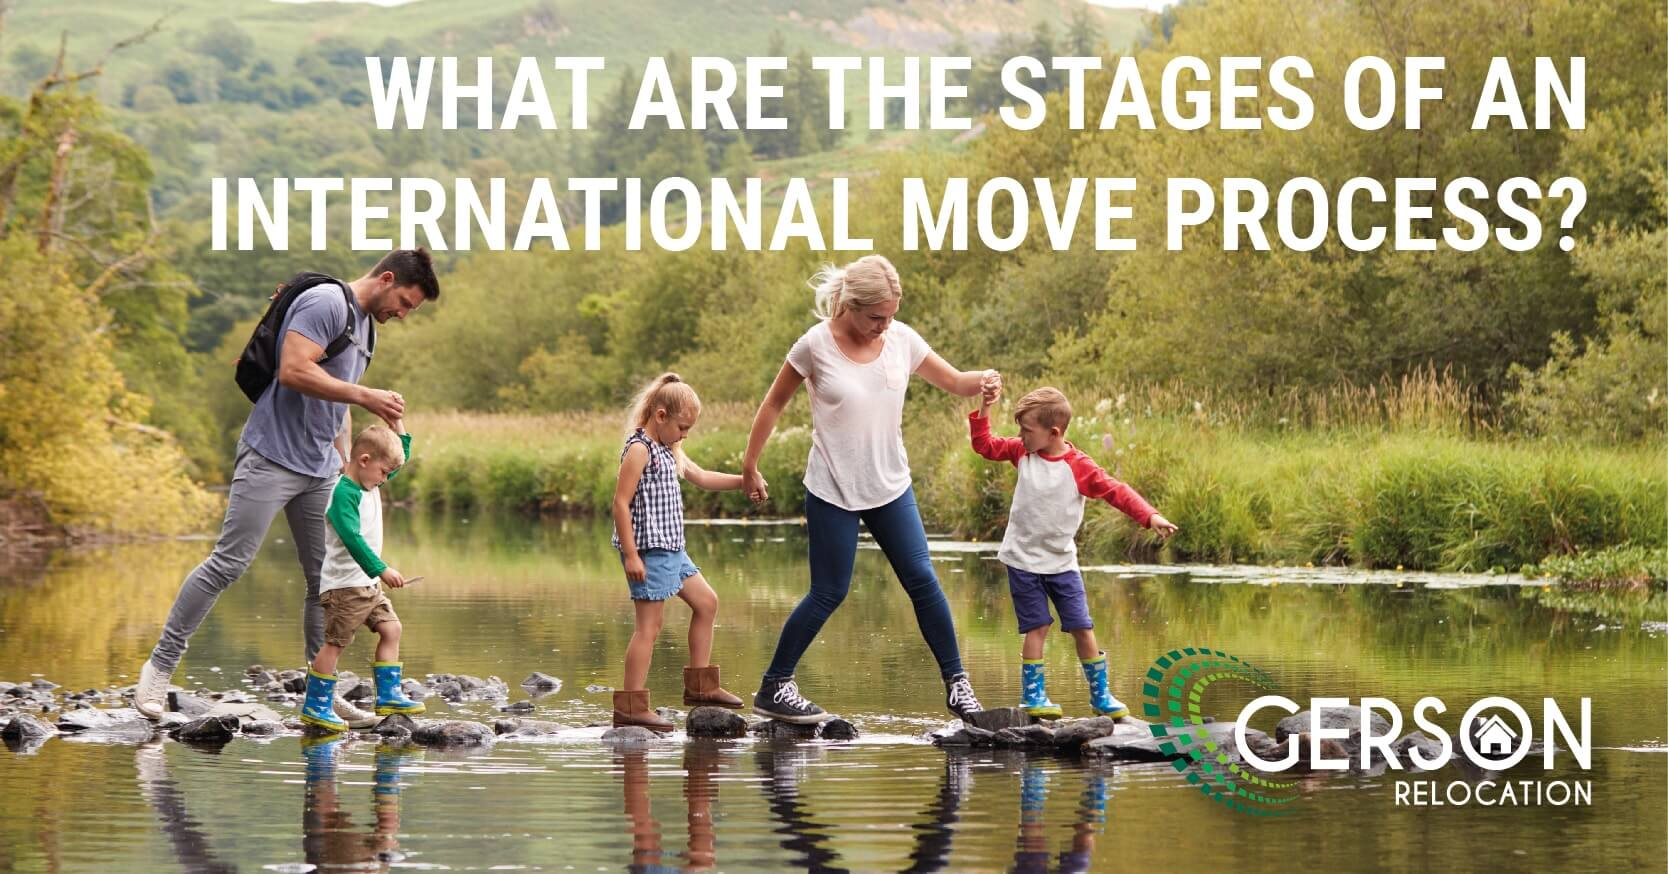 What Are The Stages Of An International Move Process?